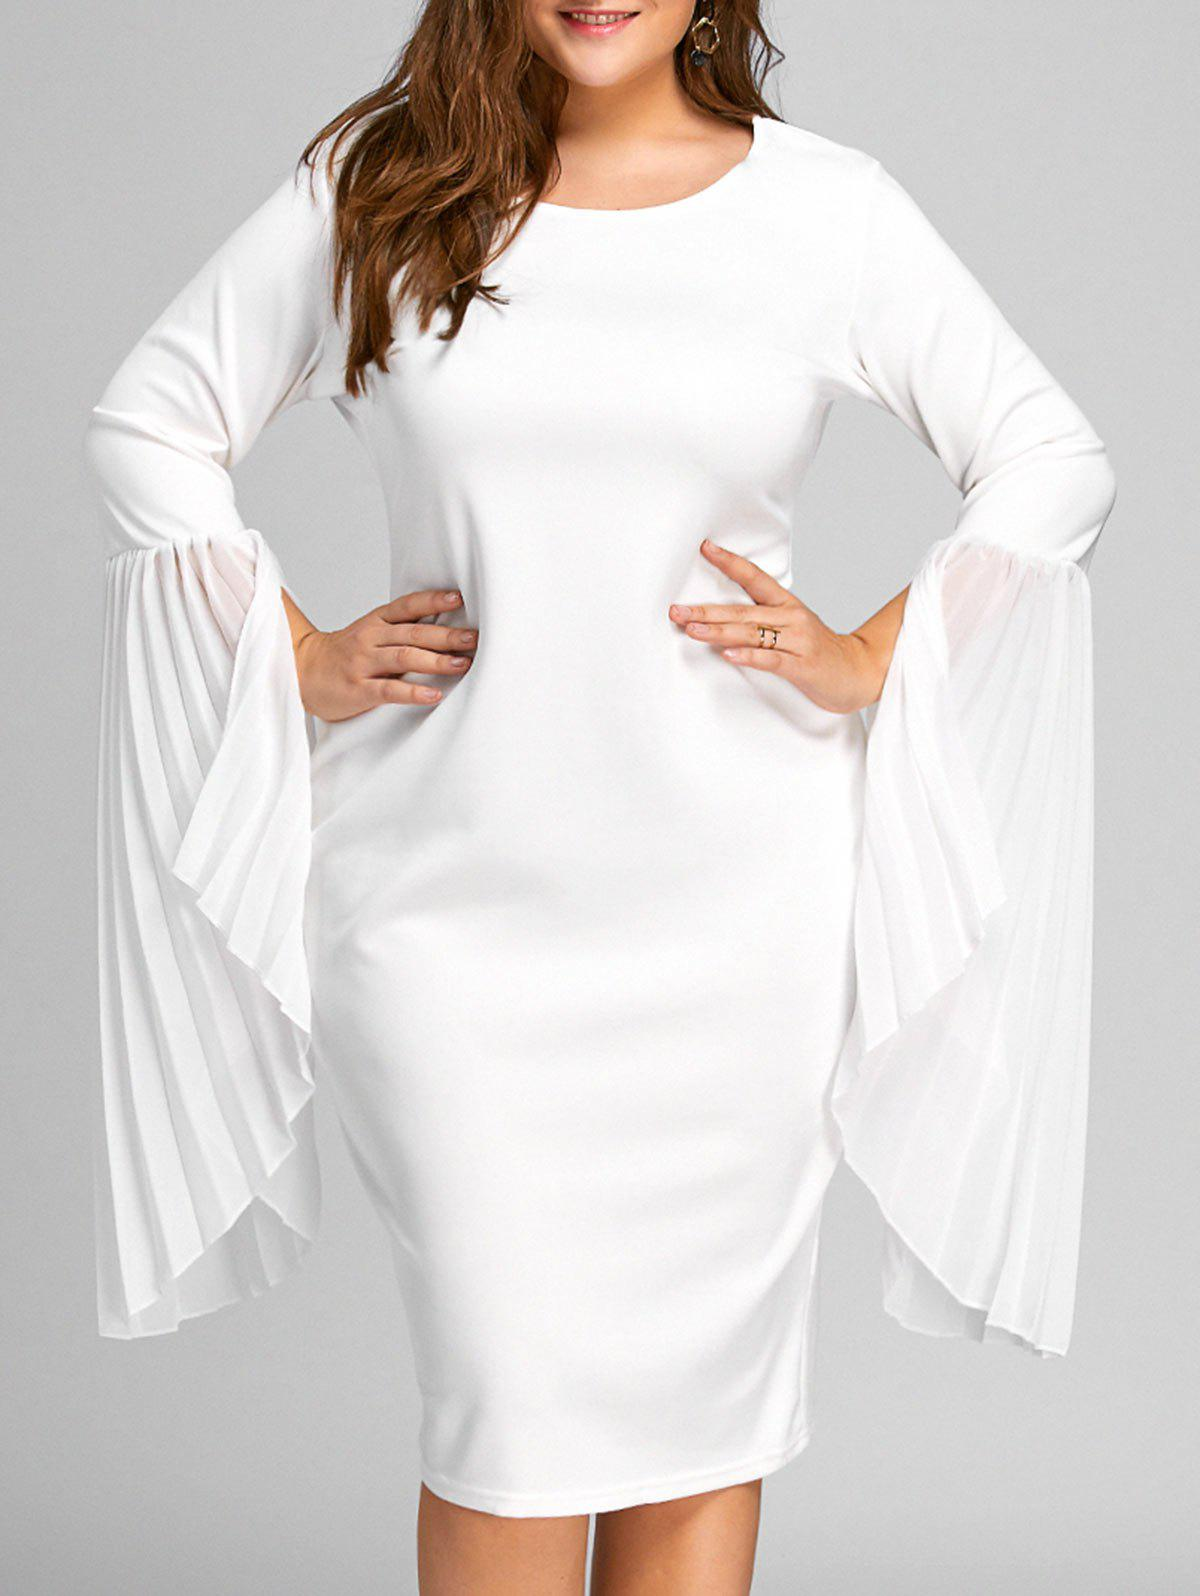 Plus Size Pleated Bell Sleeve Sheath DressWOMEN<br><br>Size: 3XL; Color: WHITE; Style: Casual; Material: Cotton,Polyester; Silhouette: Sheath; Dresses Length: Knee-Length; Neckline: Round Collar; Sleeve Type: Flare Sleeve; Sleeve Length: Long Sleeves; Embellishment: Pleated; Pattern Type: Solid; With Belt: No; Season: Fall; Weight: 0.5150kg; Package Contents: 1 x Dress;